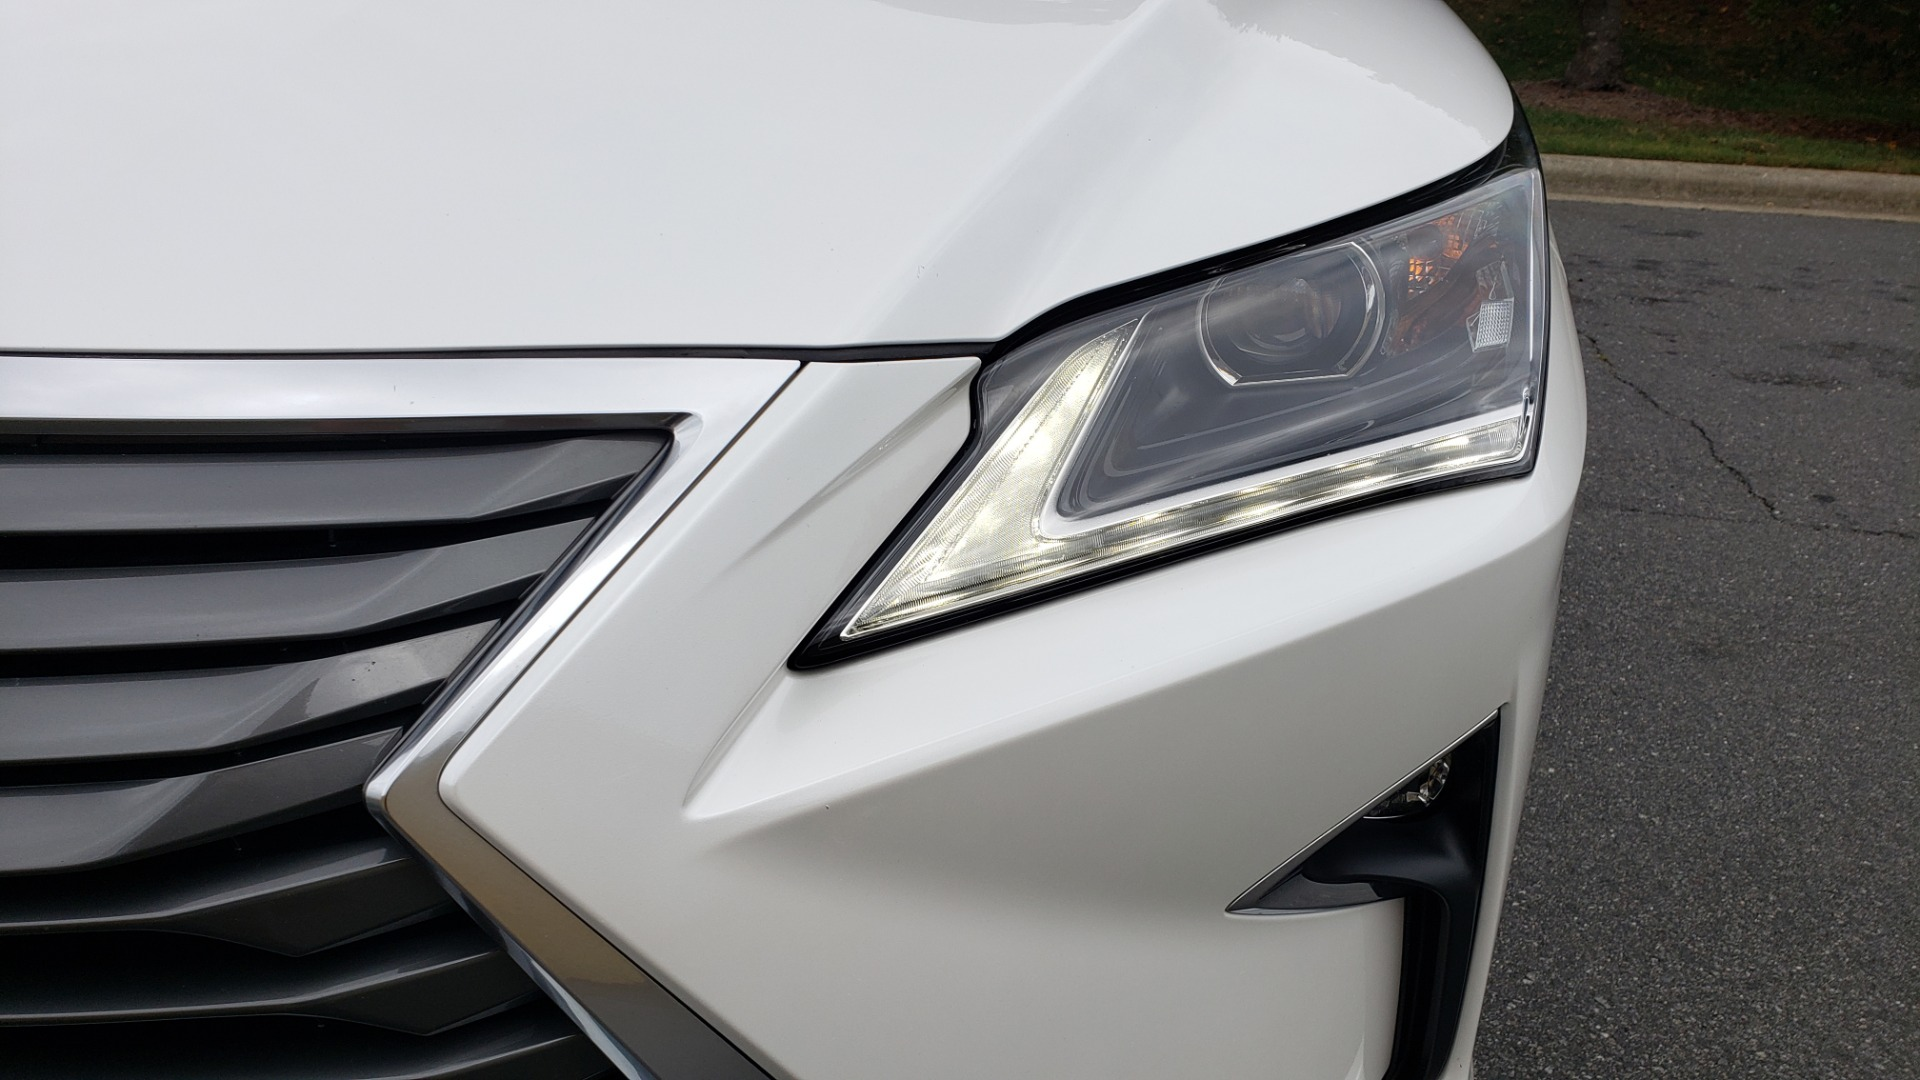 Used 2016 Lexus RX 350 FWD / 4-DR / 3.5L V6 / 8-SPD AUTO / LEATHER / REARVIEW for sale Sold at Formula Imports in Charlotte NC 28227 25